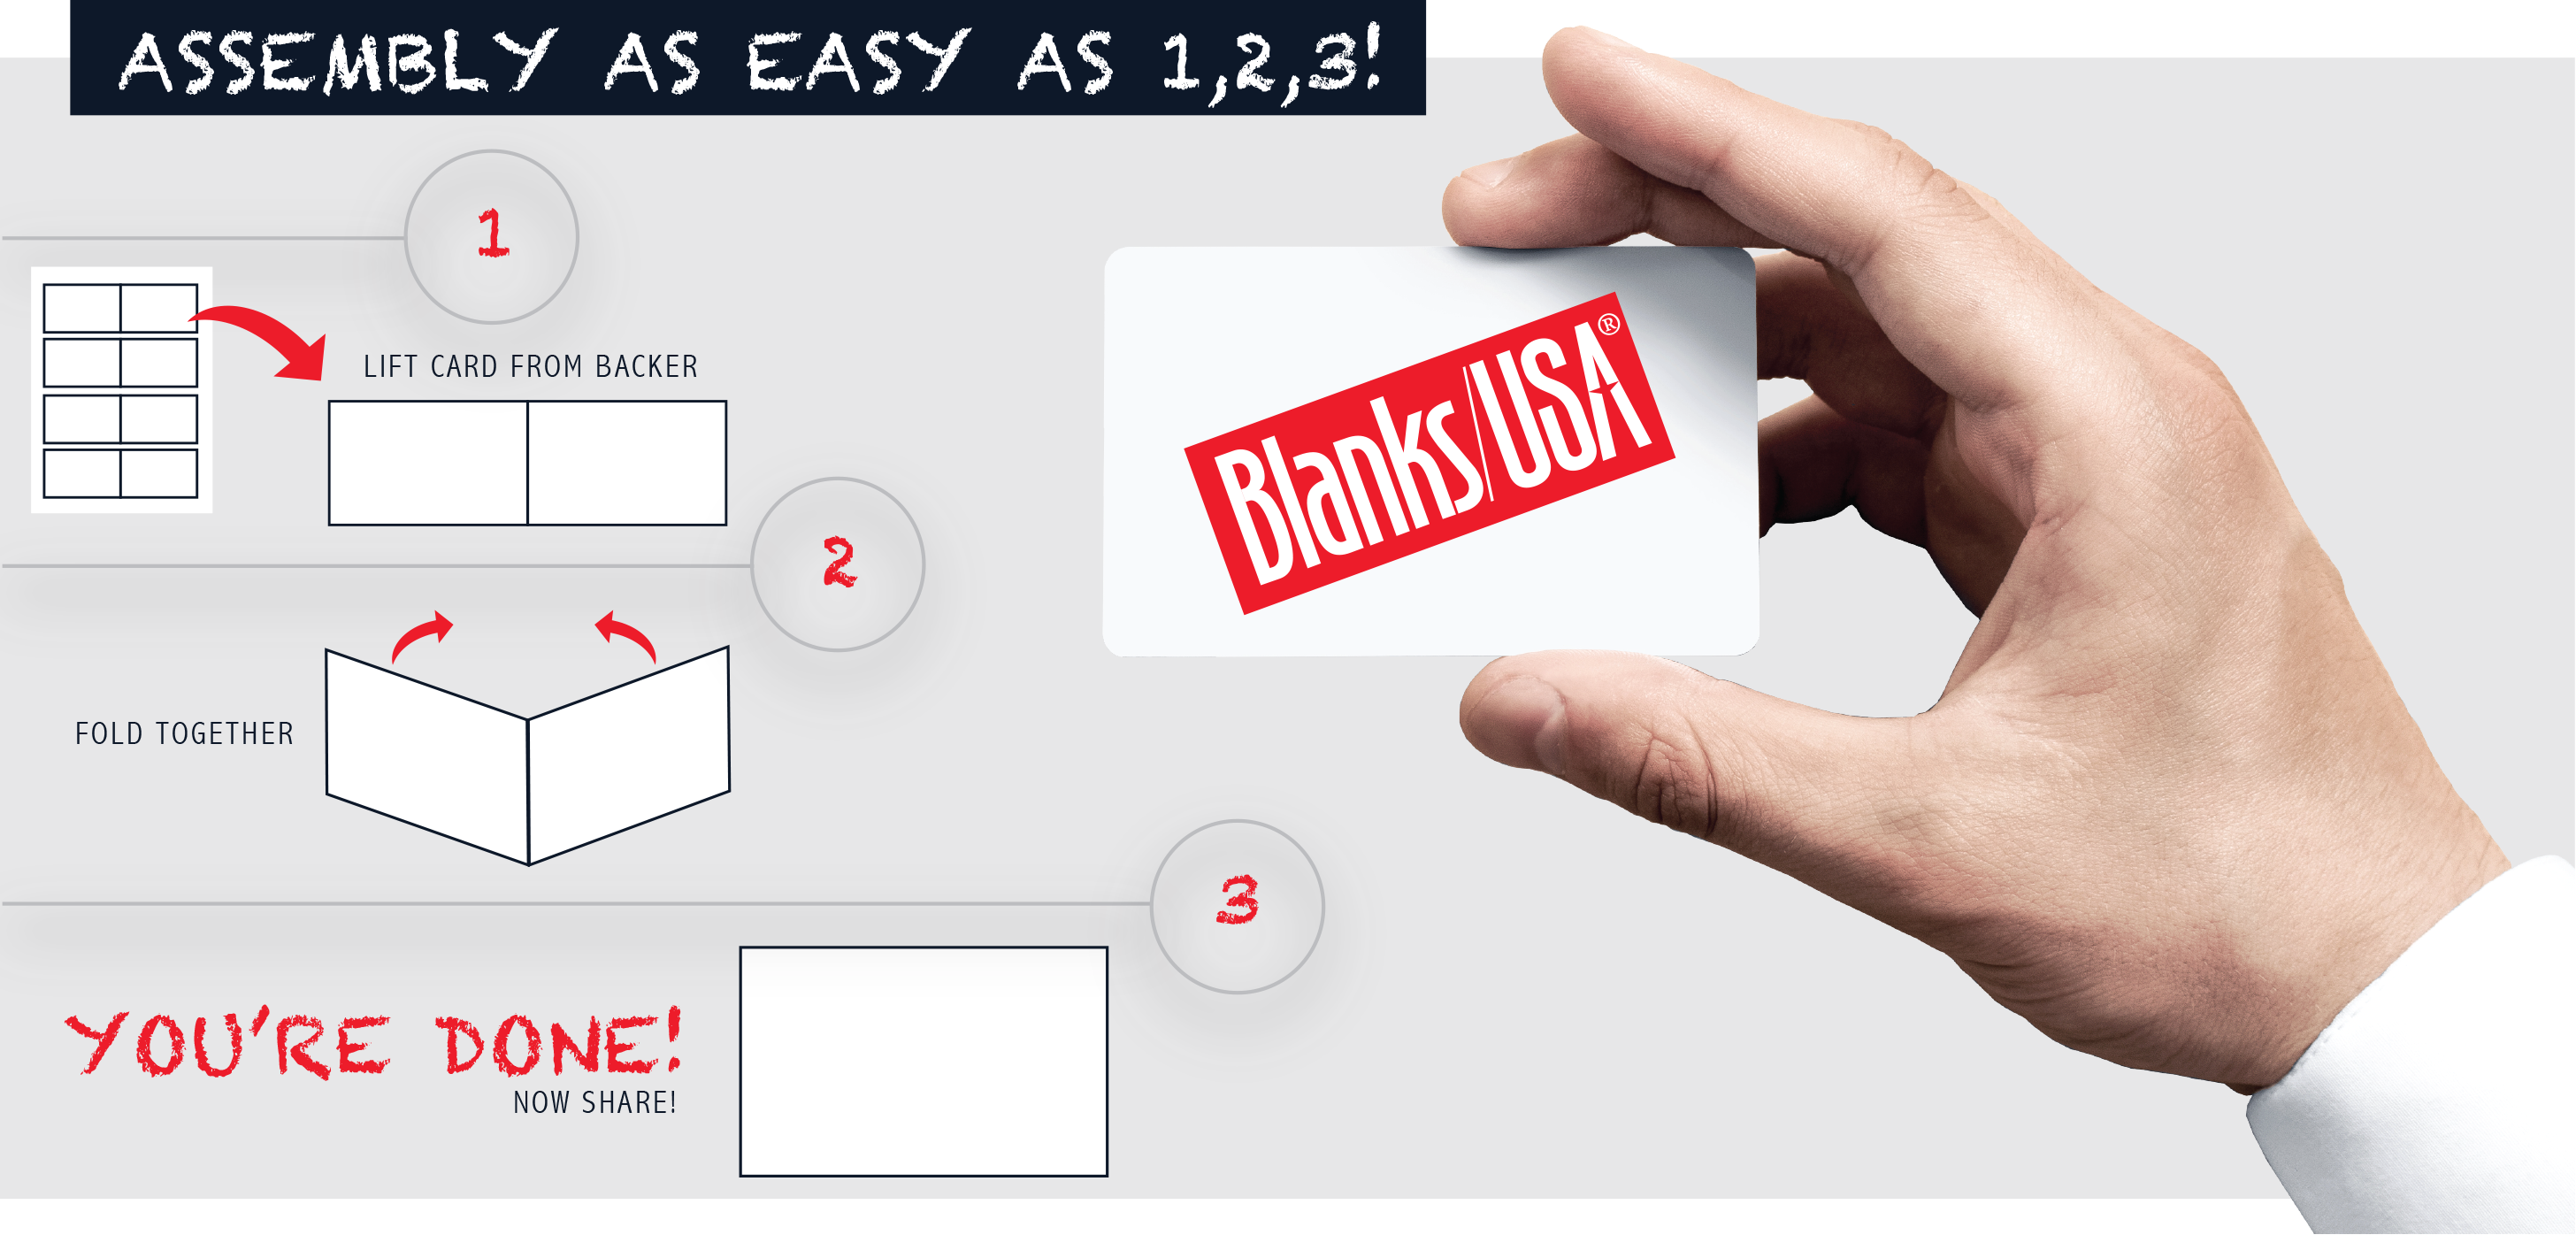 Fat Card™ - Assembly Easy as 1, 2, 3!